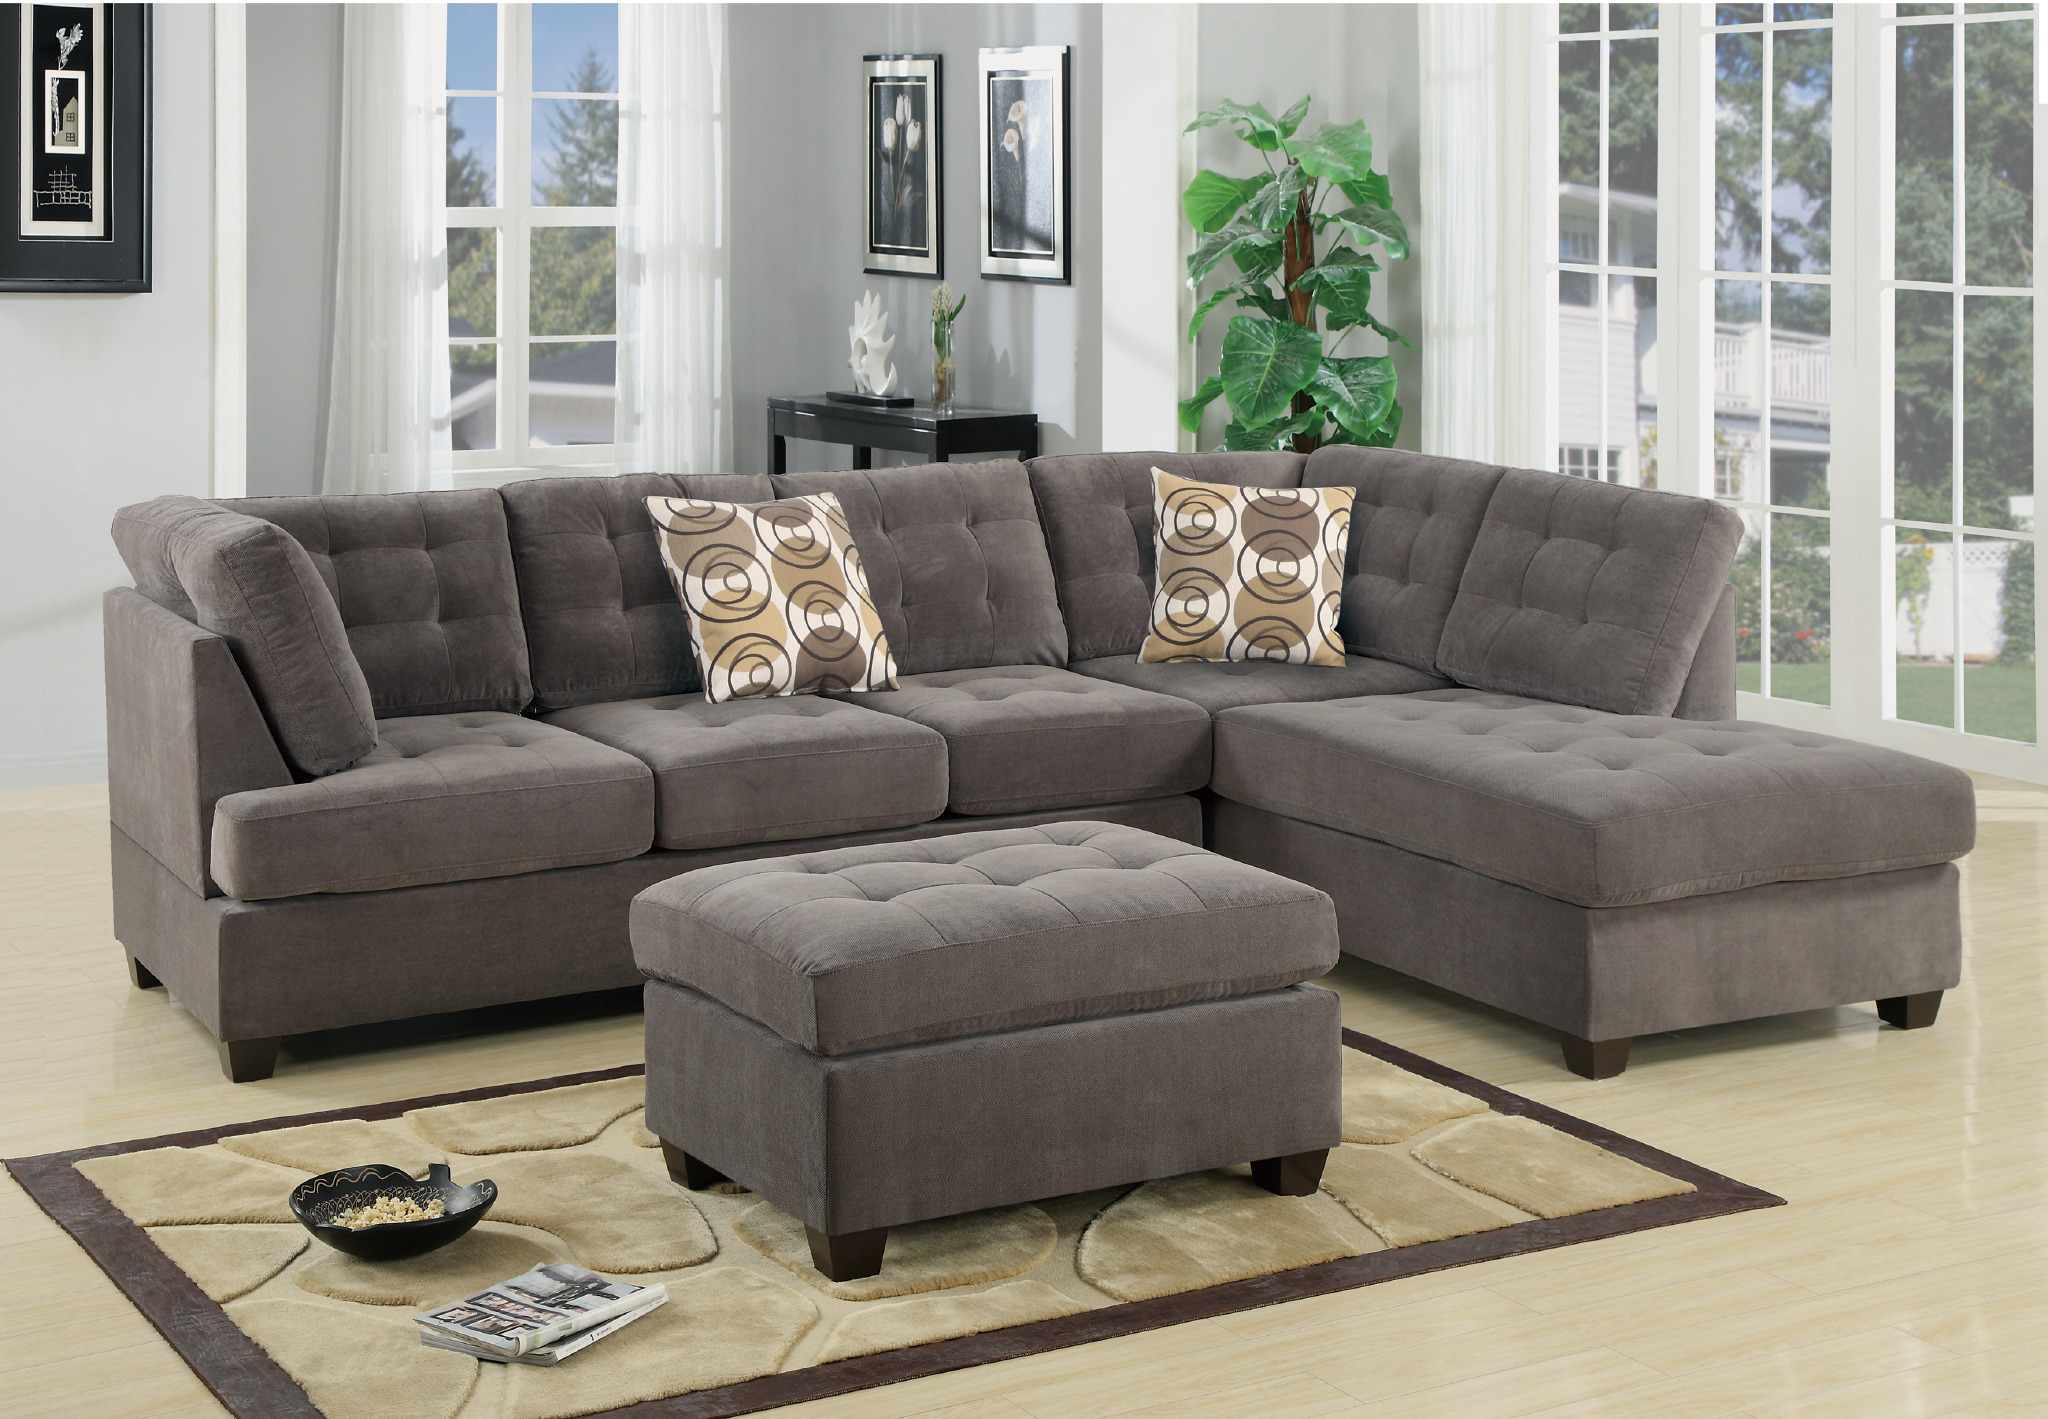 2 Piece Sectional Sofa Bucio S Furniture